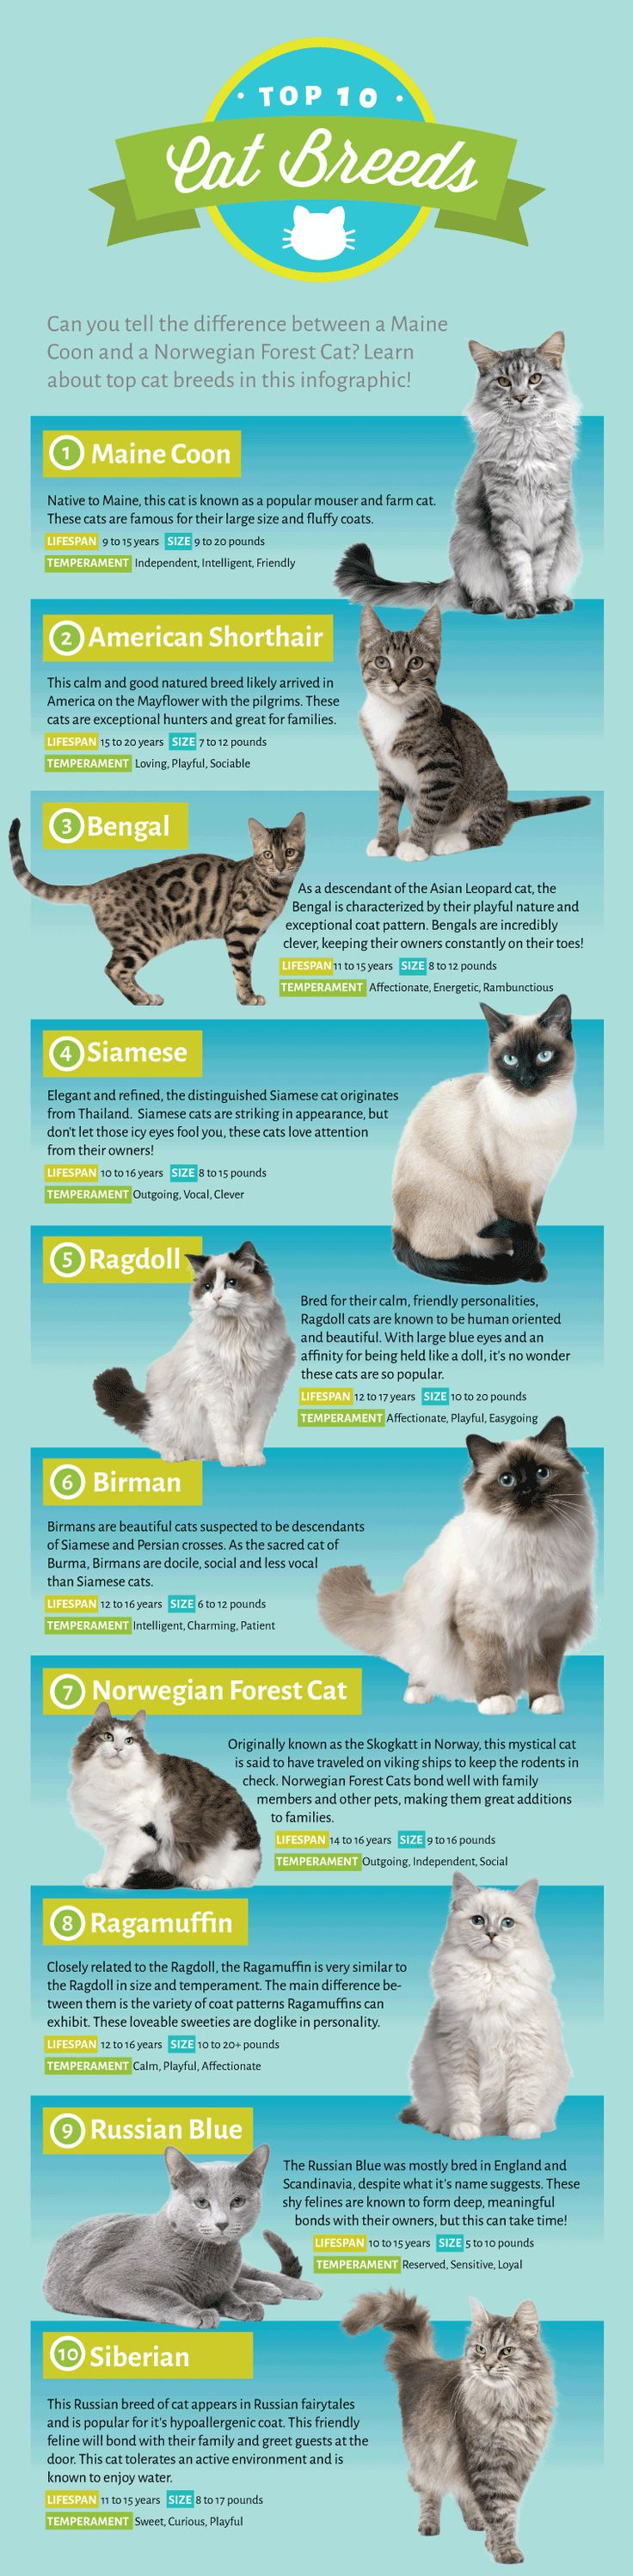 The Top #Cat Breeds of 2015, based on fan votes from around the world! Did your favorites make the list? http://www.entirelypets.com/top-cat-breeds.html?utm_source=pinterest&utm_medium=web&utm_campaign=epptpostinfo#utm_sguid=148622,d456d1d1-8838-11c9-bfd8-83b4041f638e